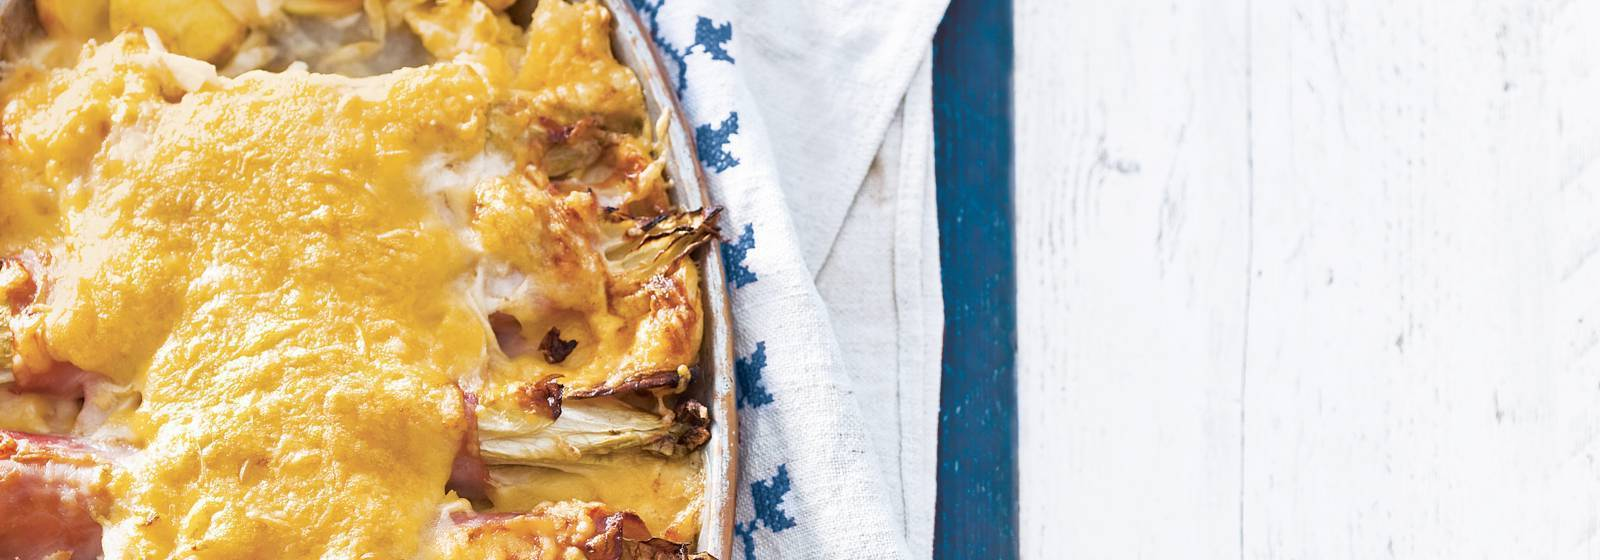 Chicory With Ham And Cheese From The Oven